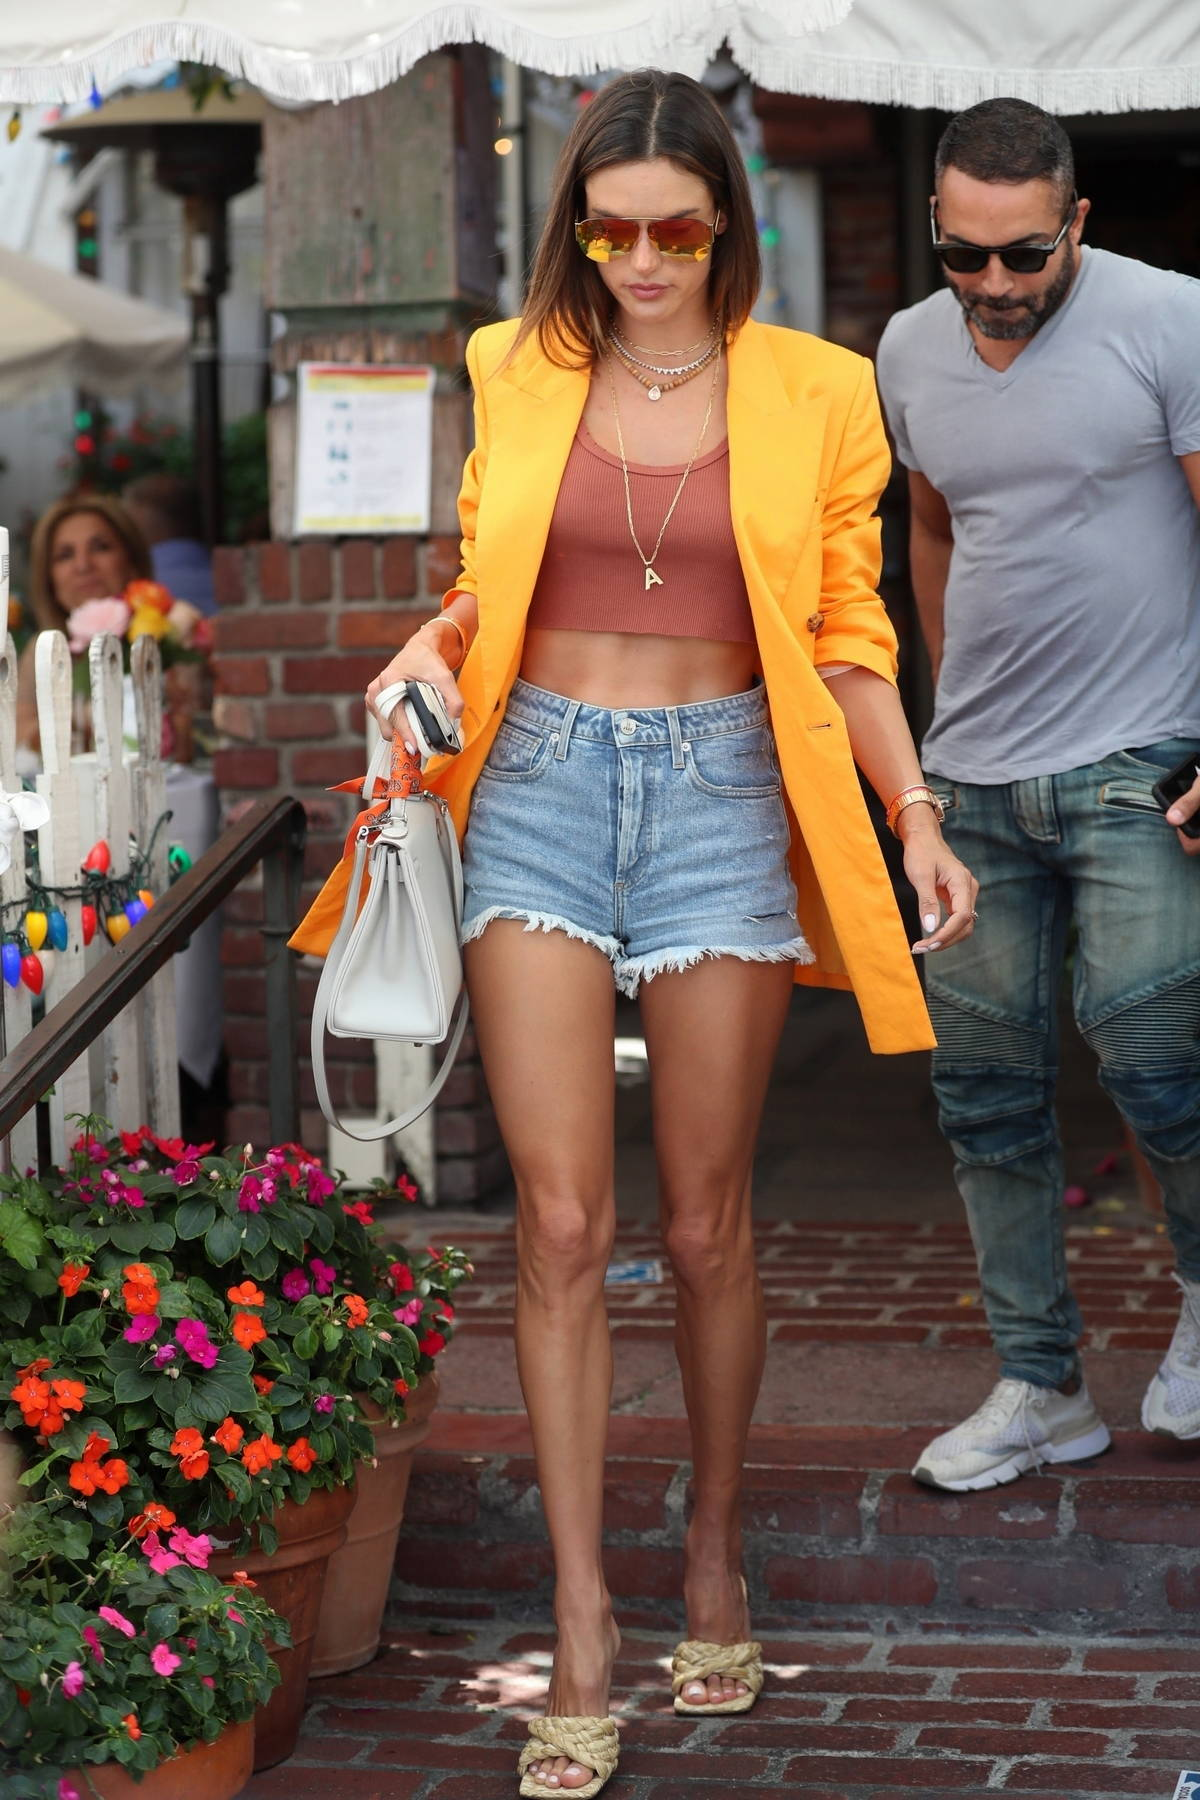 Alessandra Ambrosio looks ravishing in orange blazer and denim shorts while out for lunch with friends in Beverly Hills, California